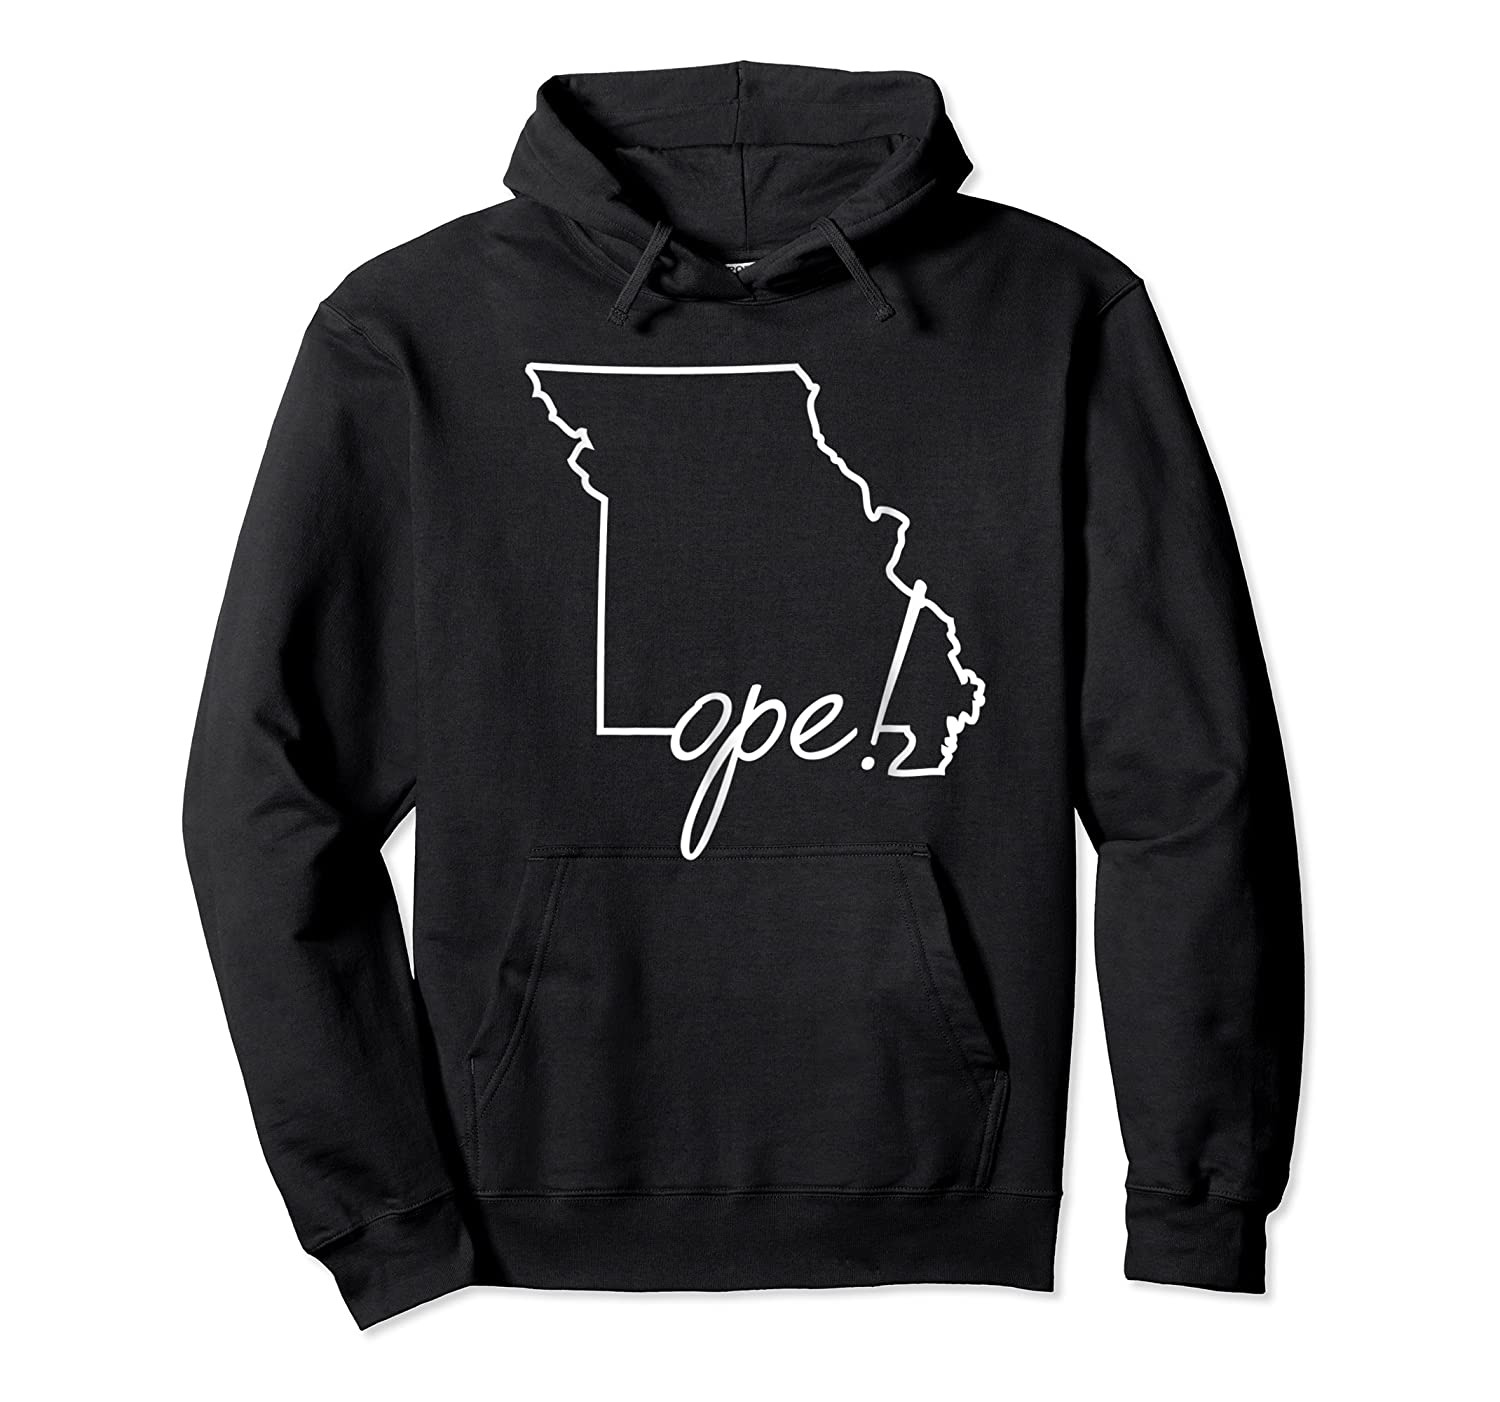 Ope Missouri Shirt Funny Midwest Culture Phrase Saying Gift Unisex Pullover Hoodie